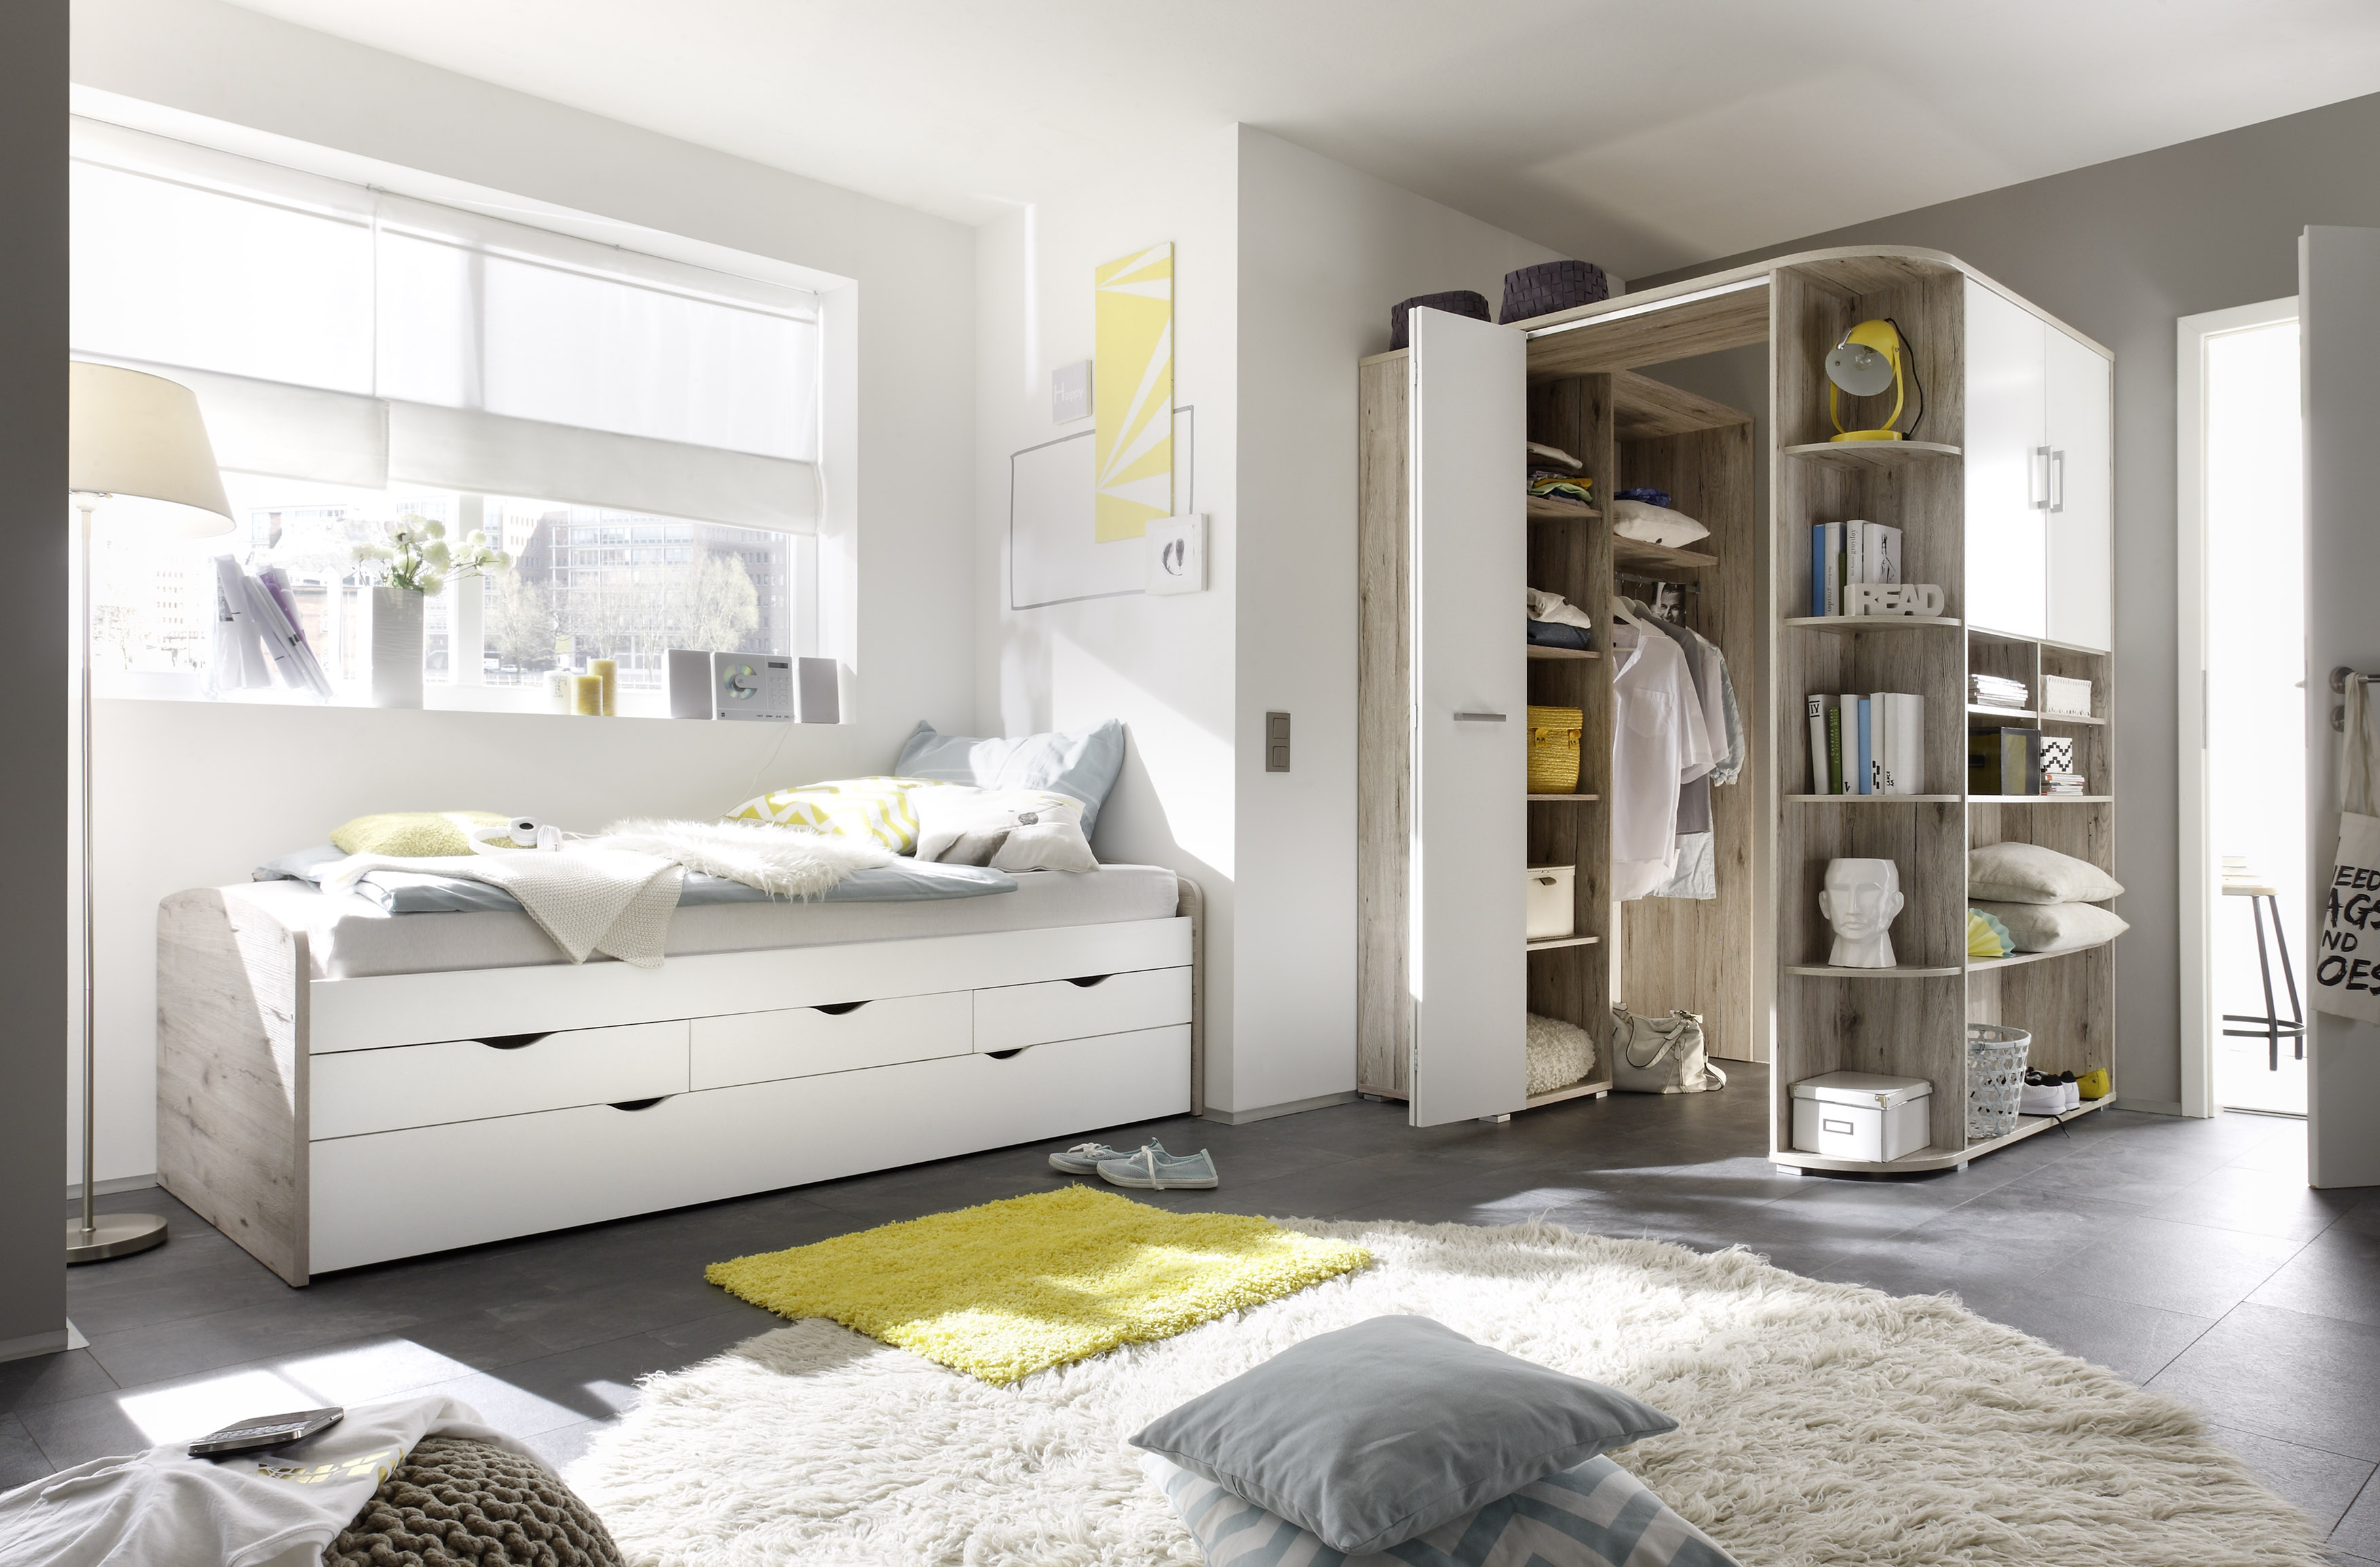 kleiderschrank eckschrank eckkleiderschrank begehbarer kleiderschrank sandeiche ebay. Black Bedroom Furniture Sets. Home Design Ideas